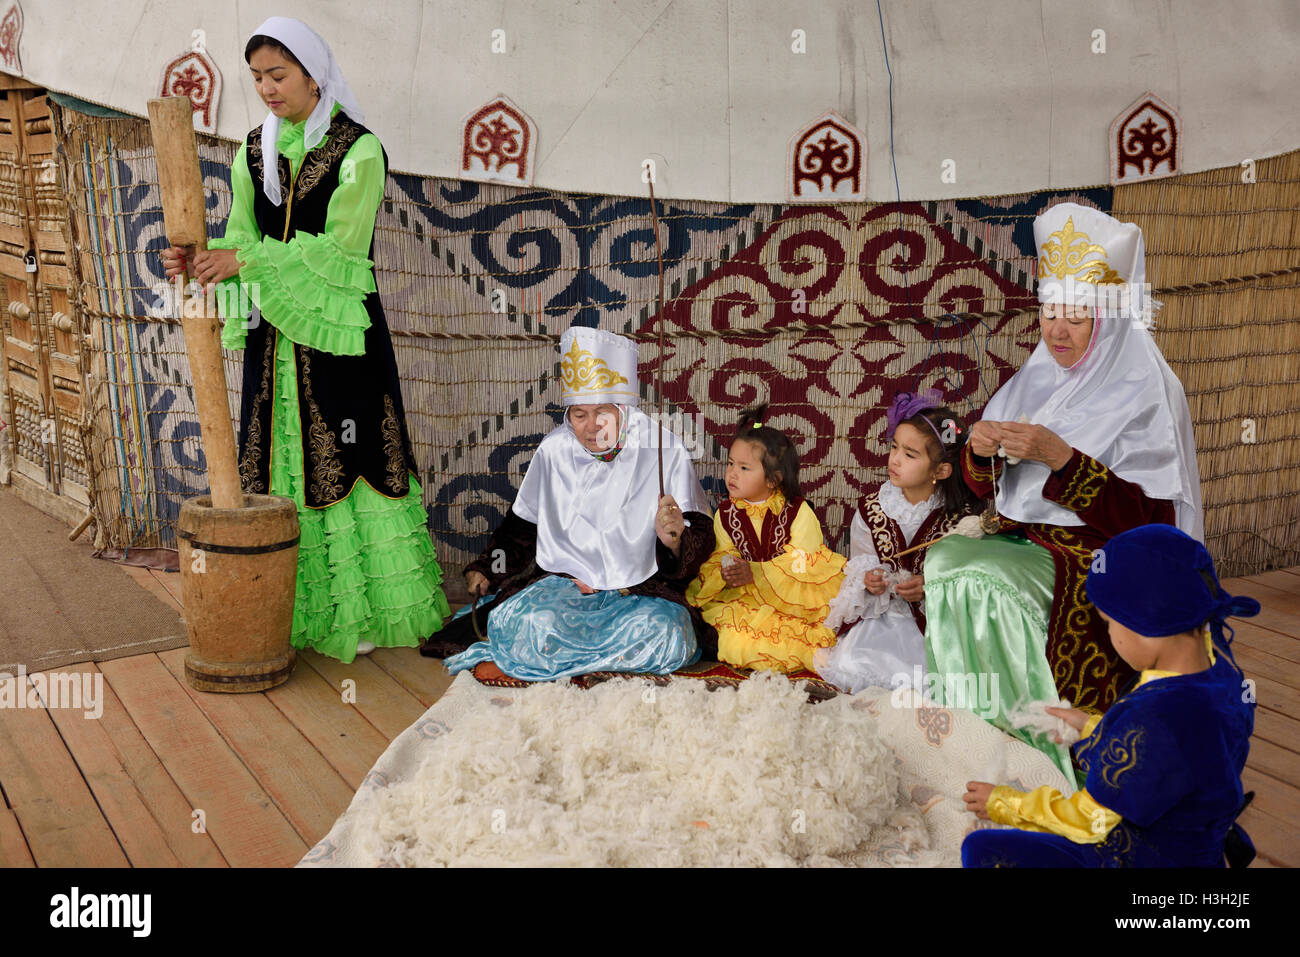 Family in traditional Kazakh clothes working wool into felt and yarn next to a yurt at Huns Village Kazakhstan - Stock Image